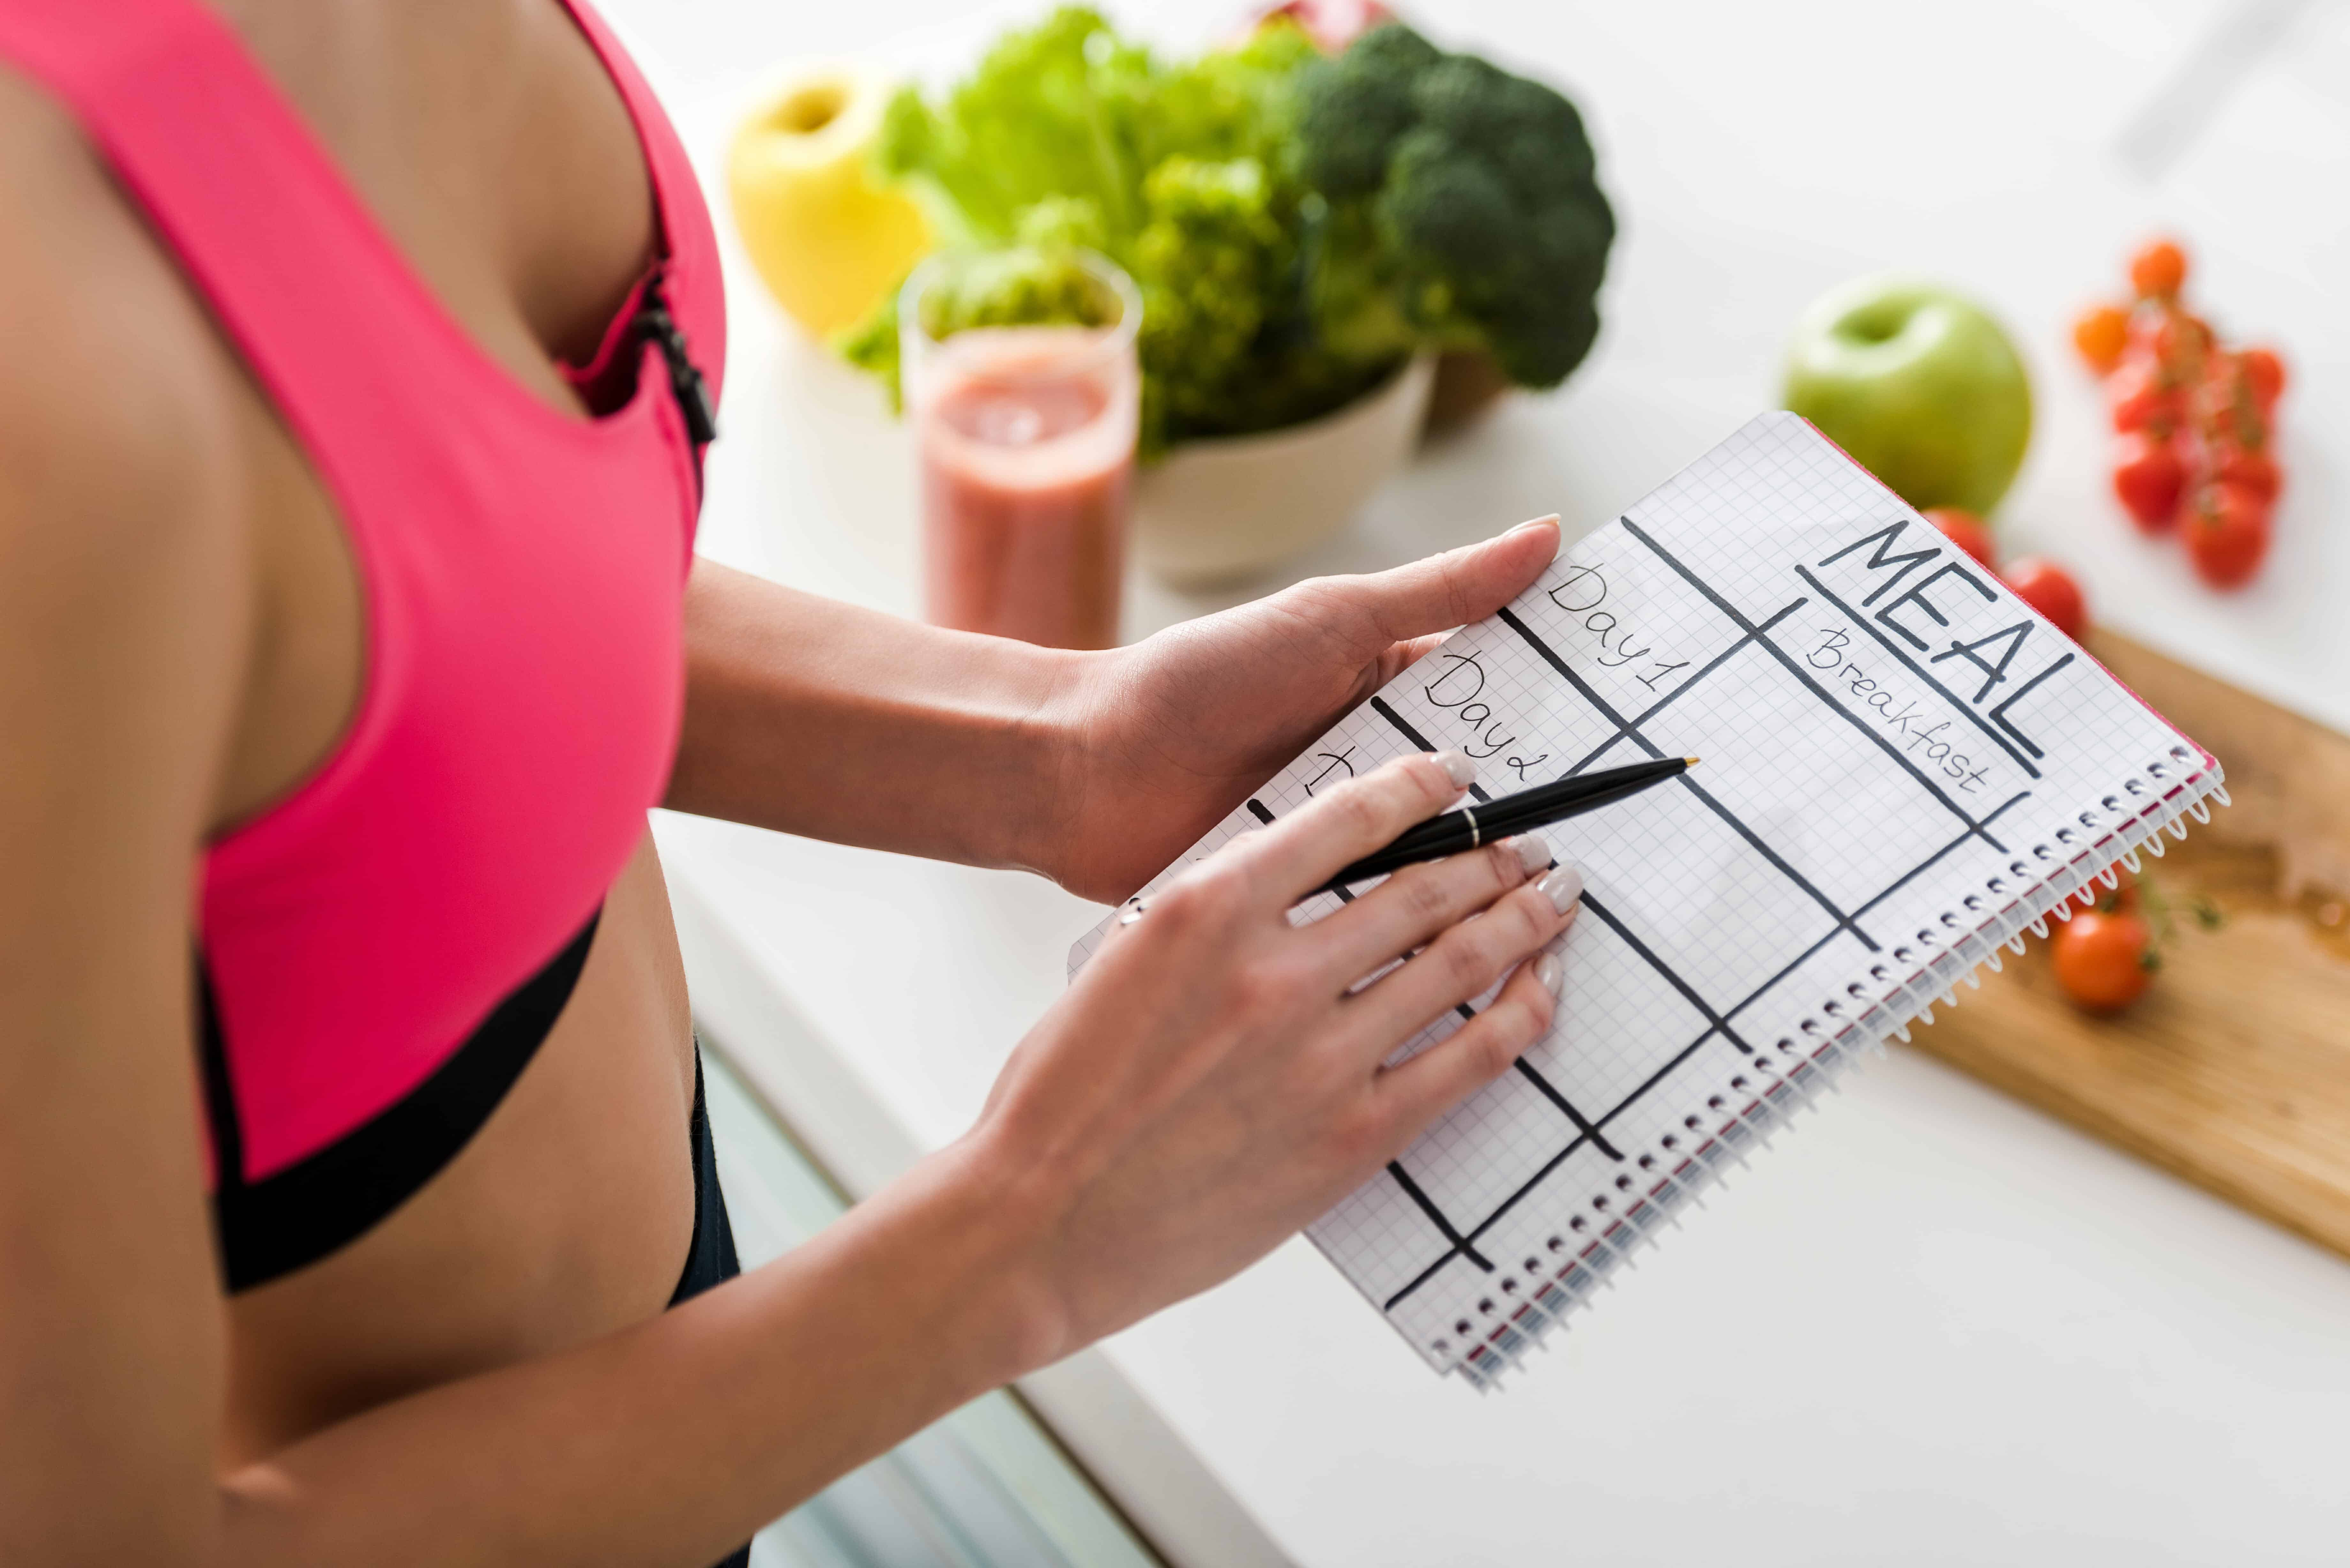 10 Common Foods That Promote Weight Loss Naturally